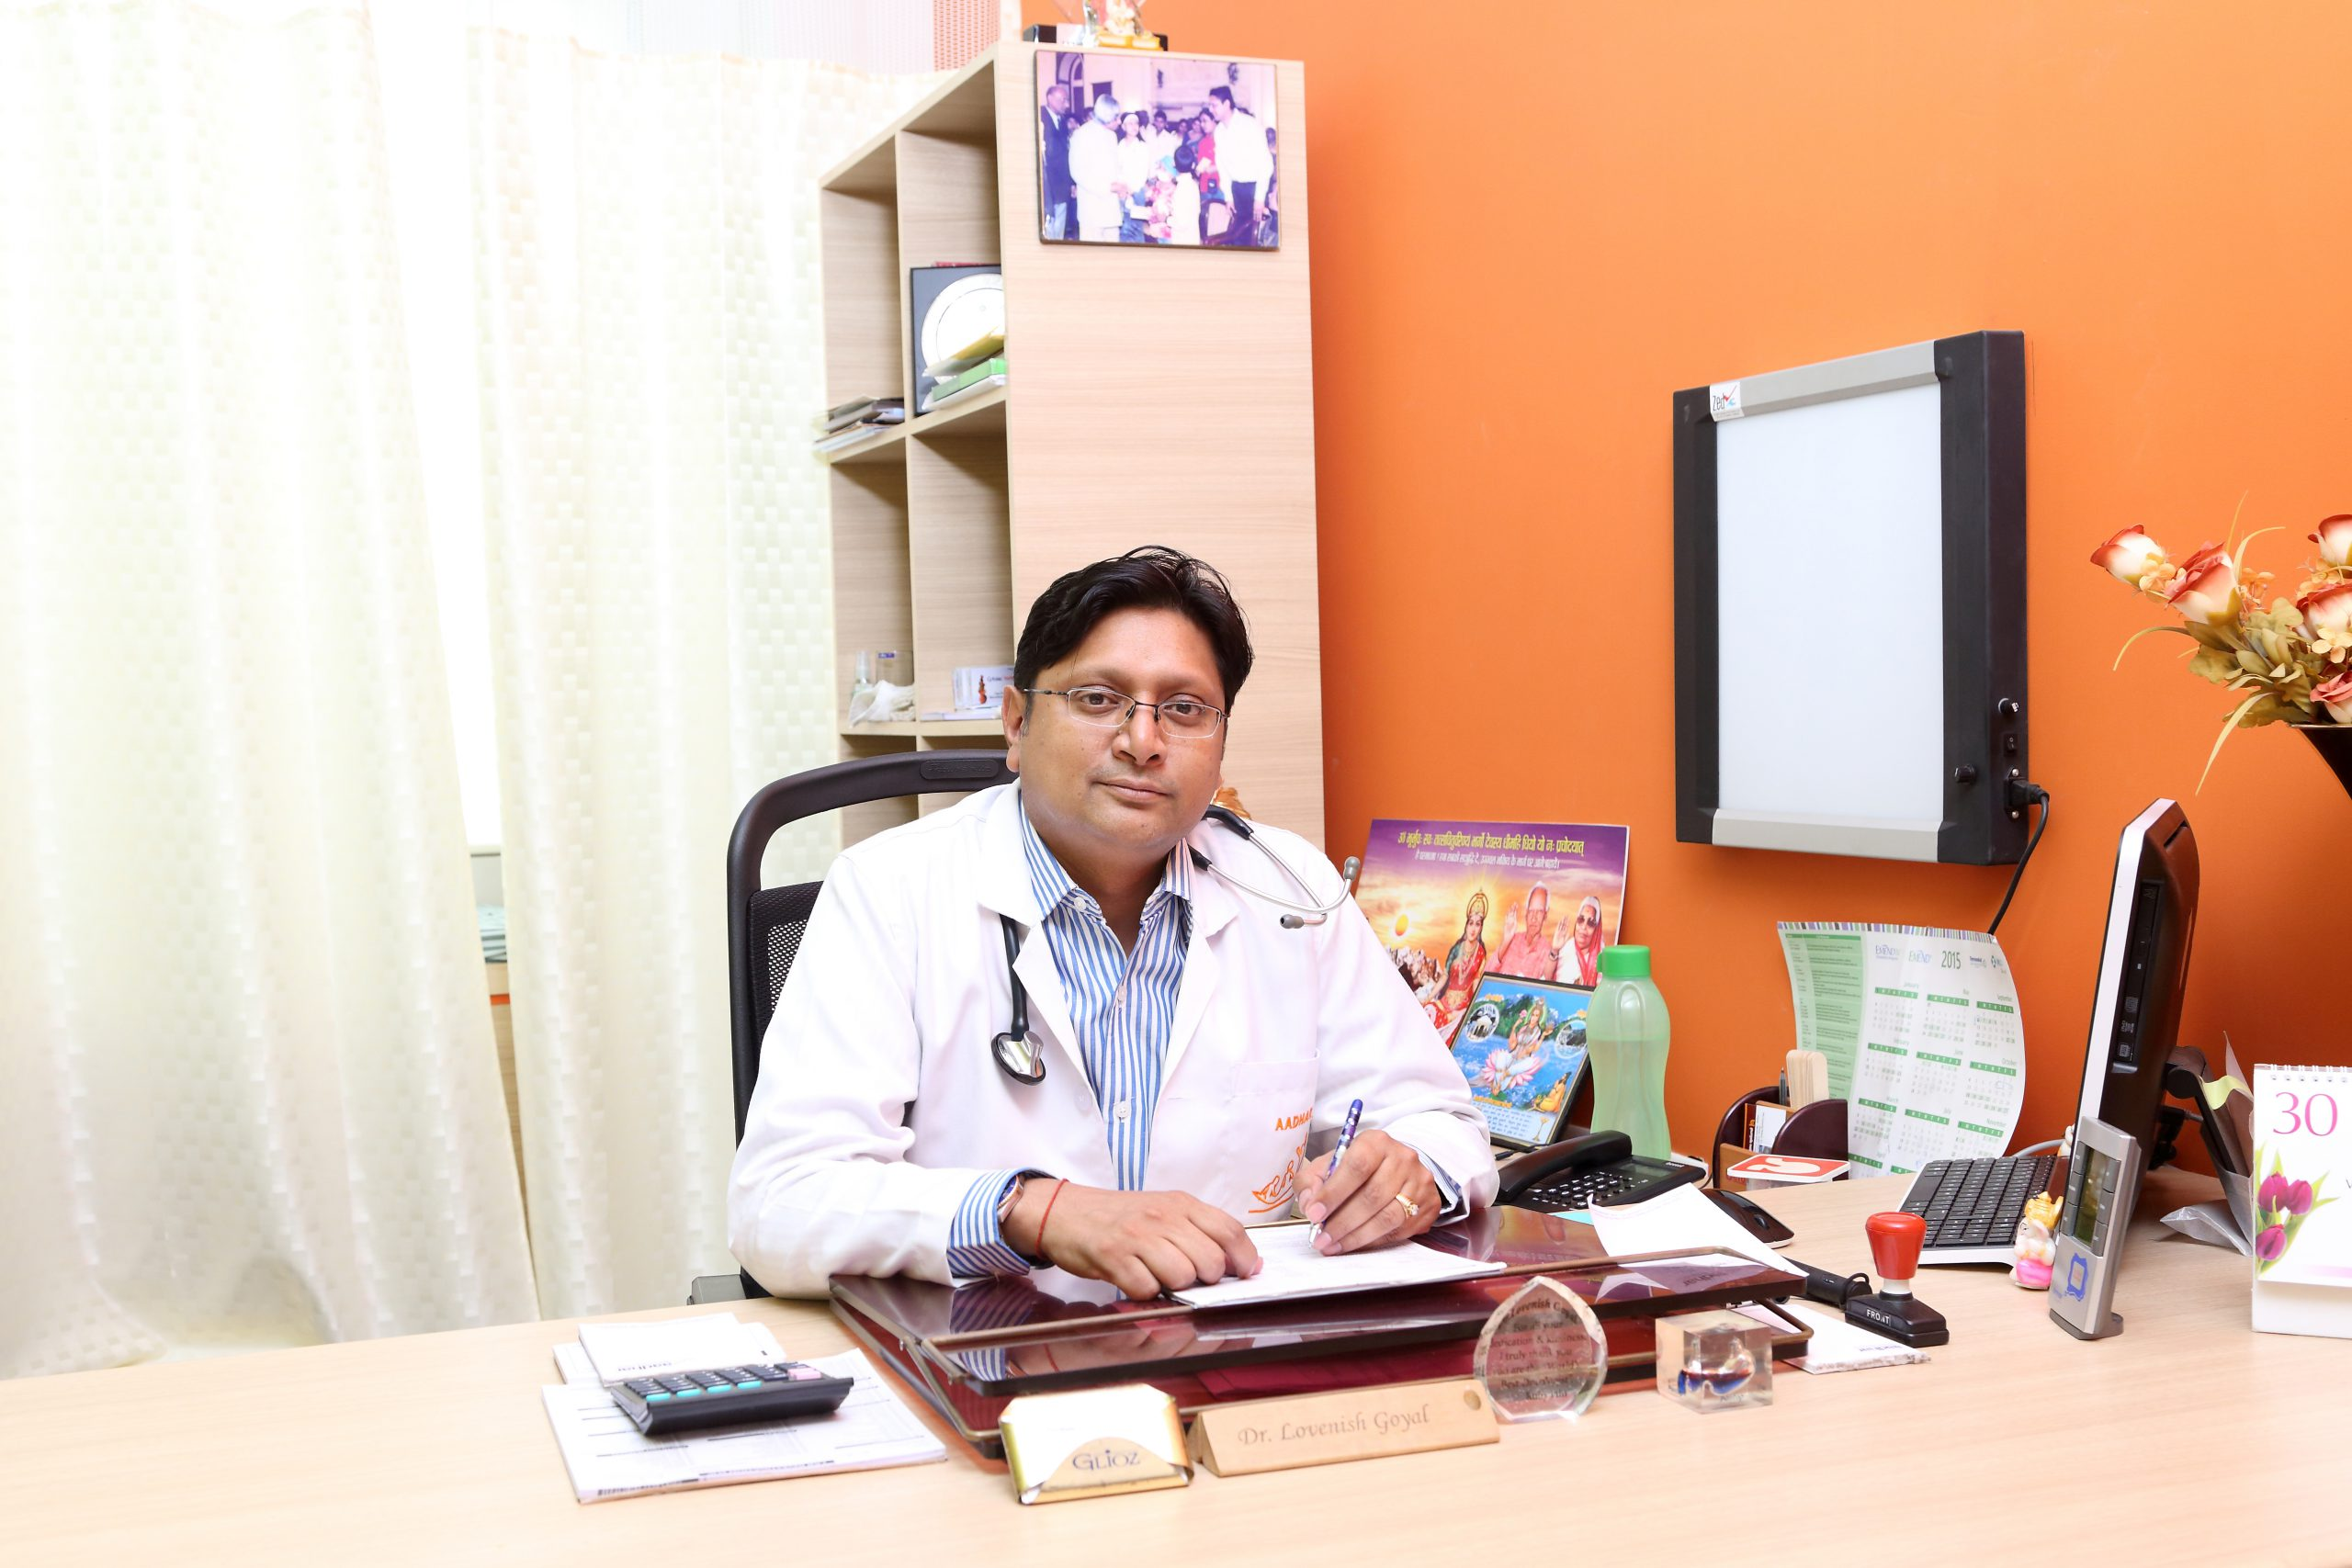 Dr. Lovenish Goyal